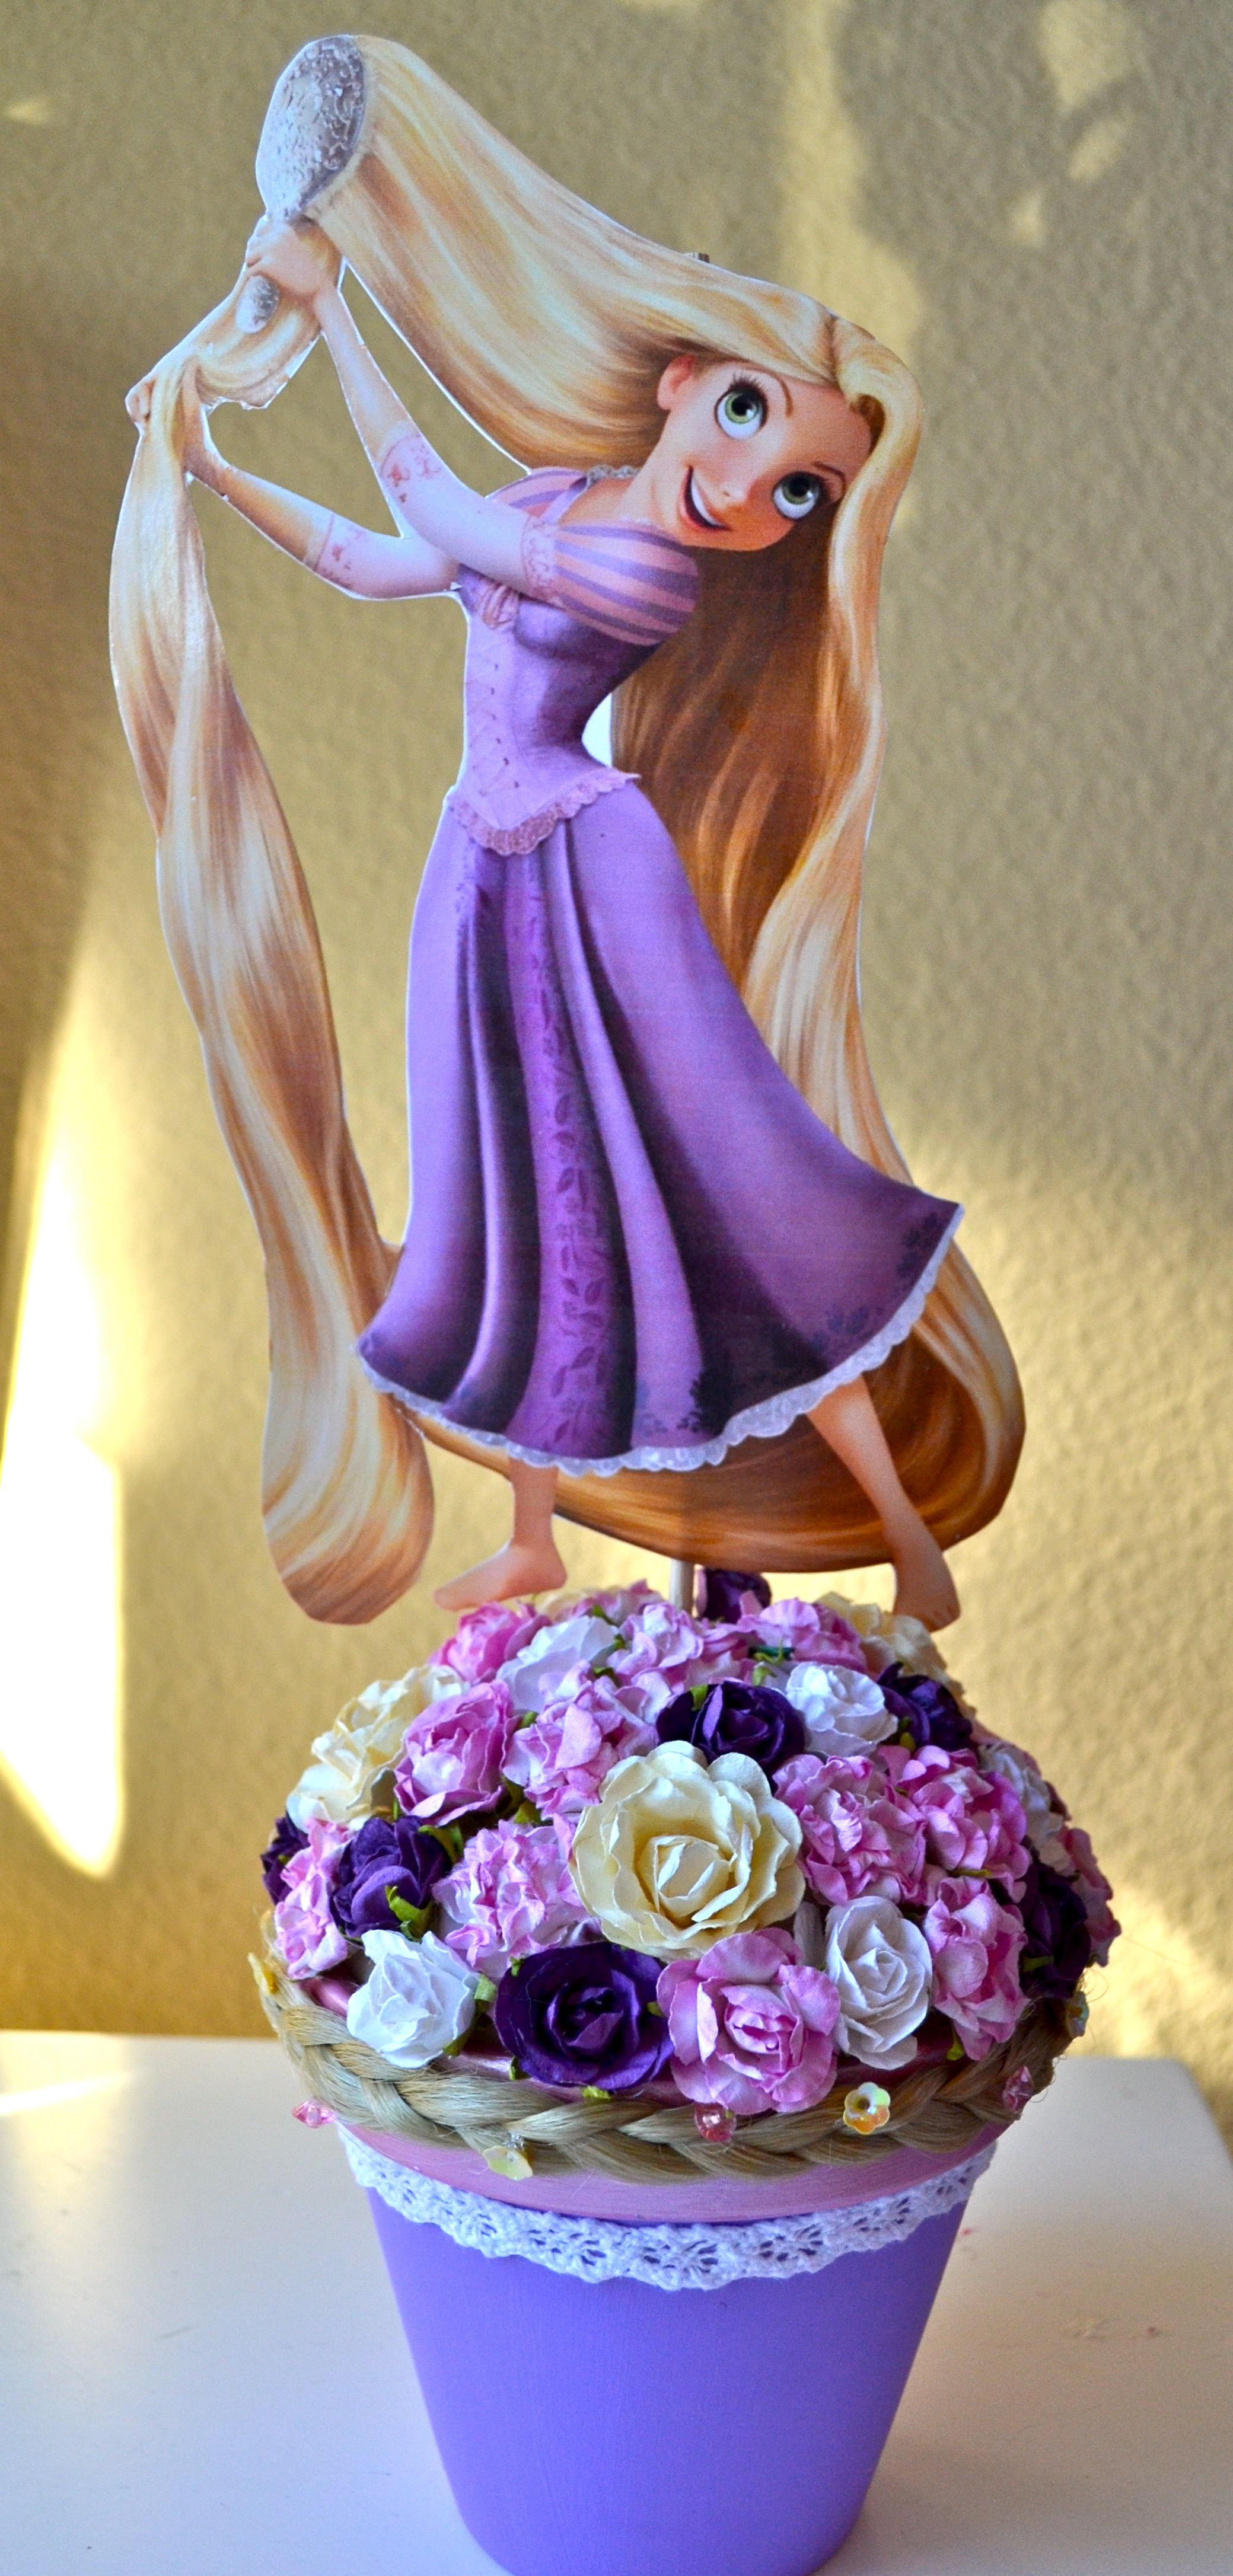 Pin By Angela Boulton On Business Rapunzel Birthday